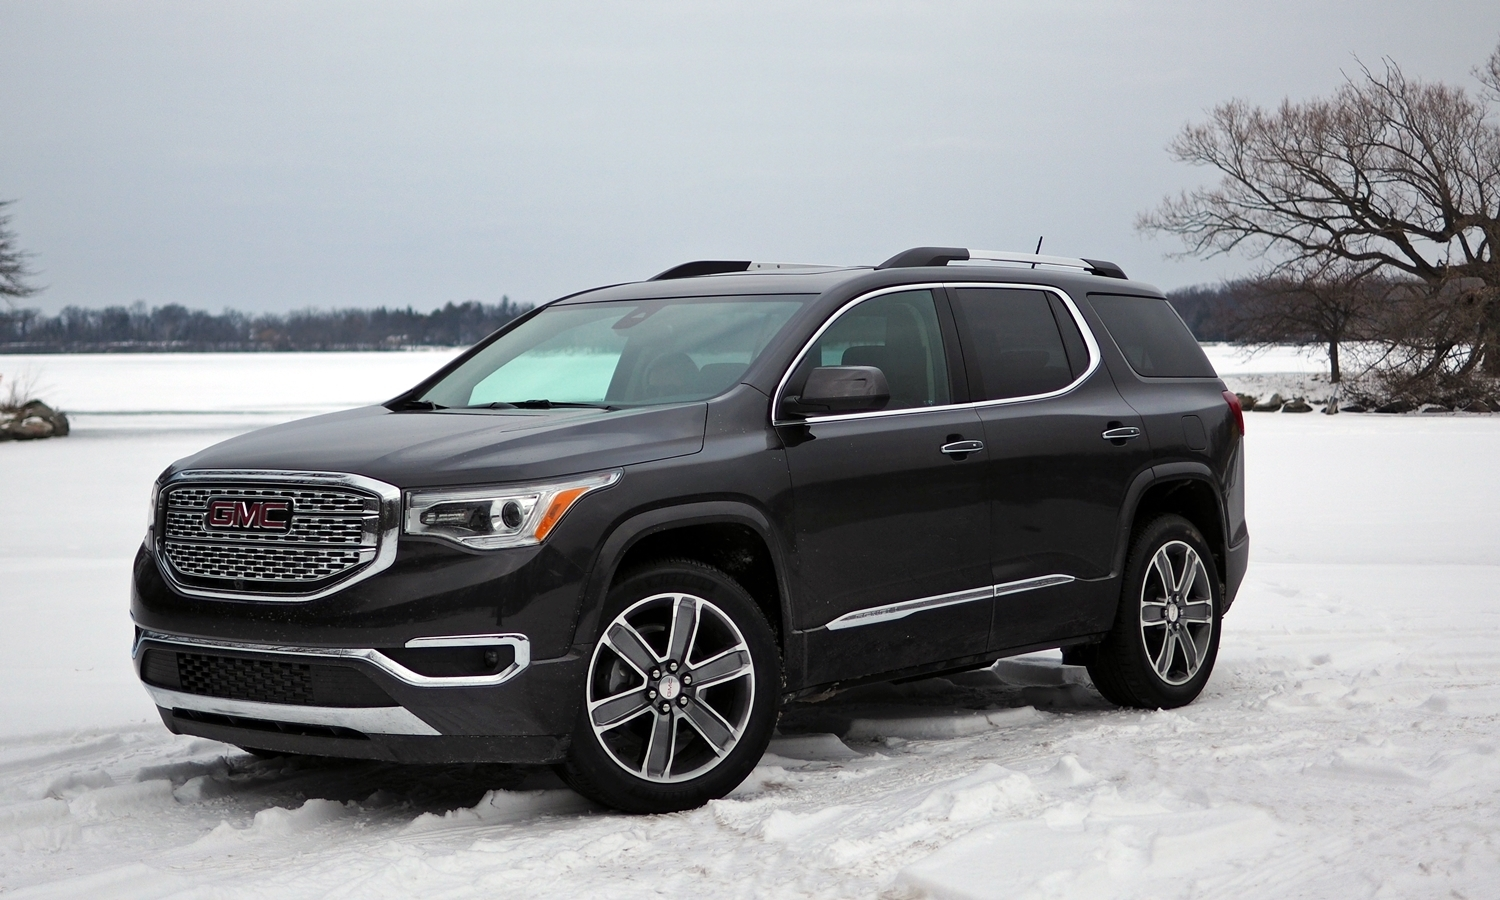 2017 GMC Acadia front quarter view